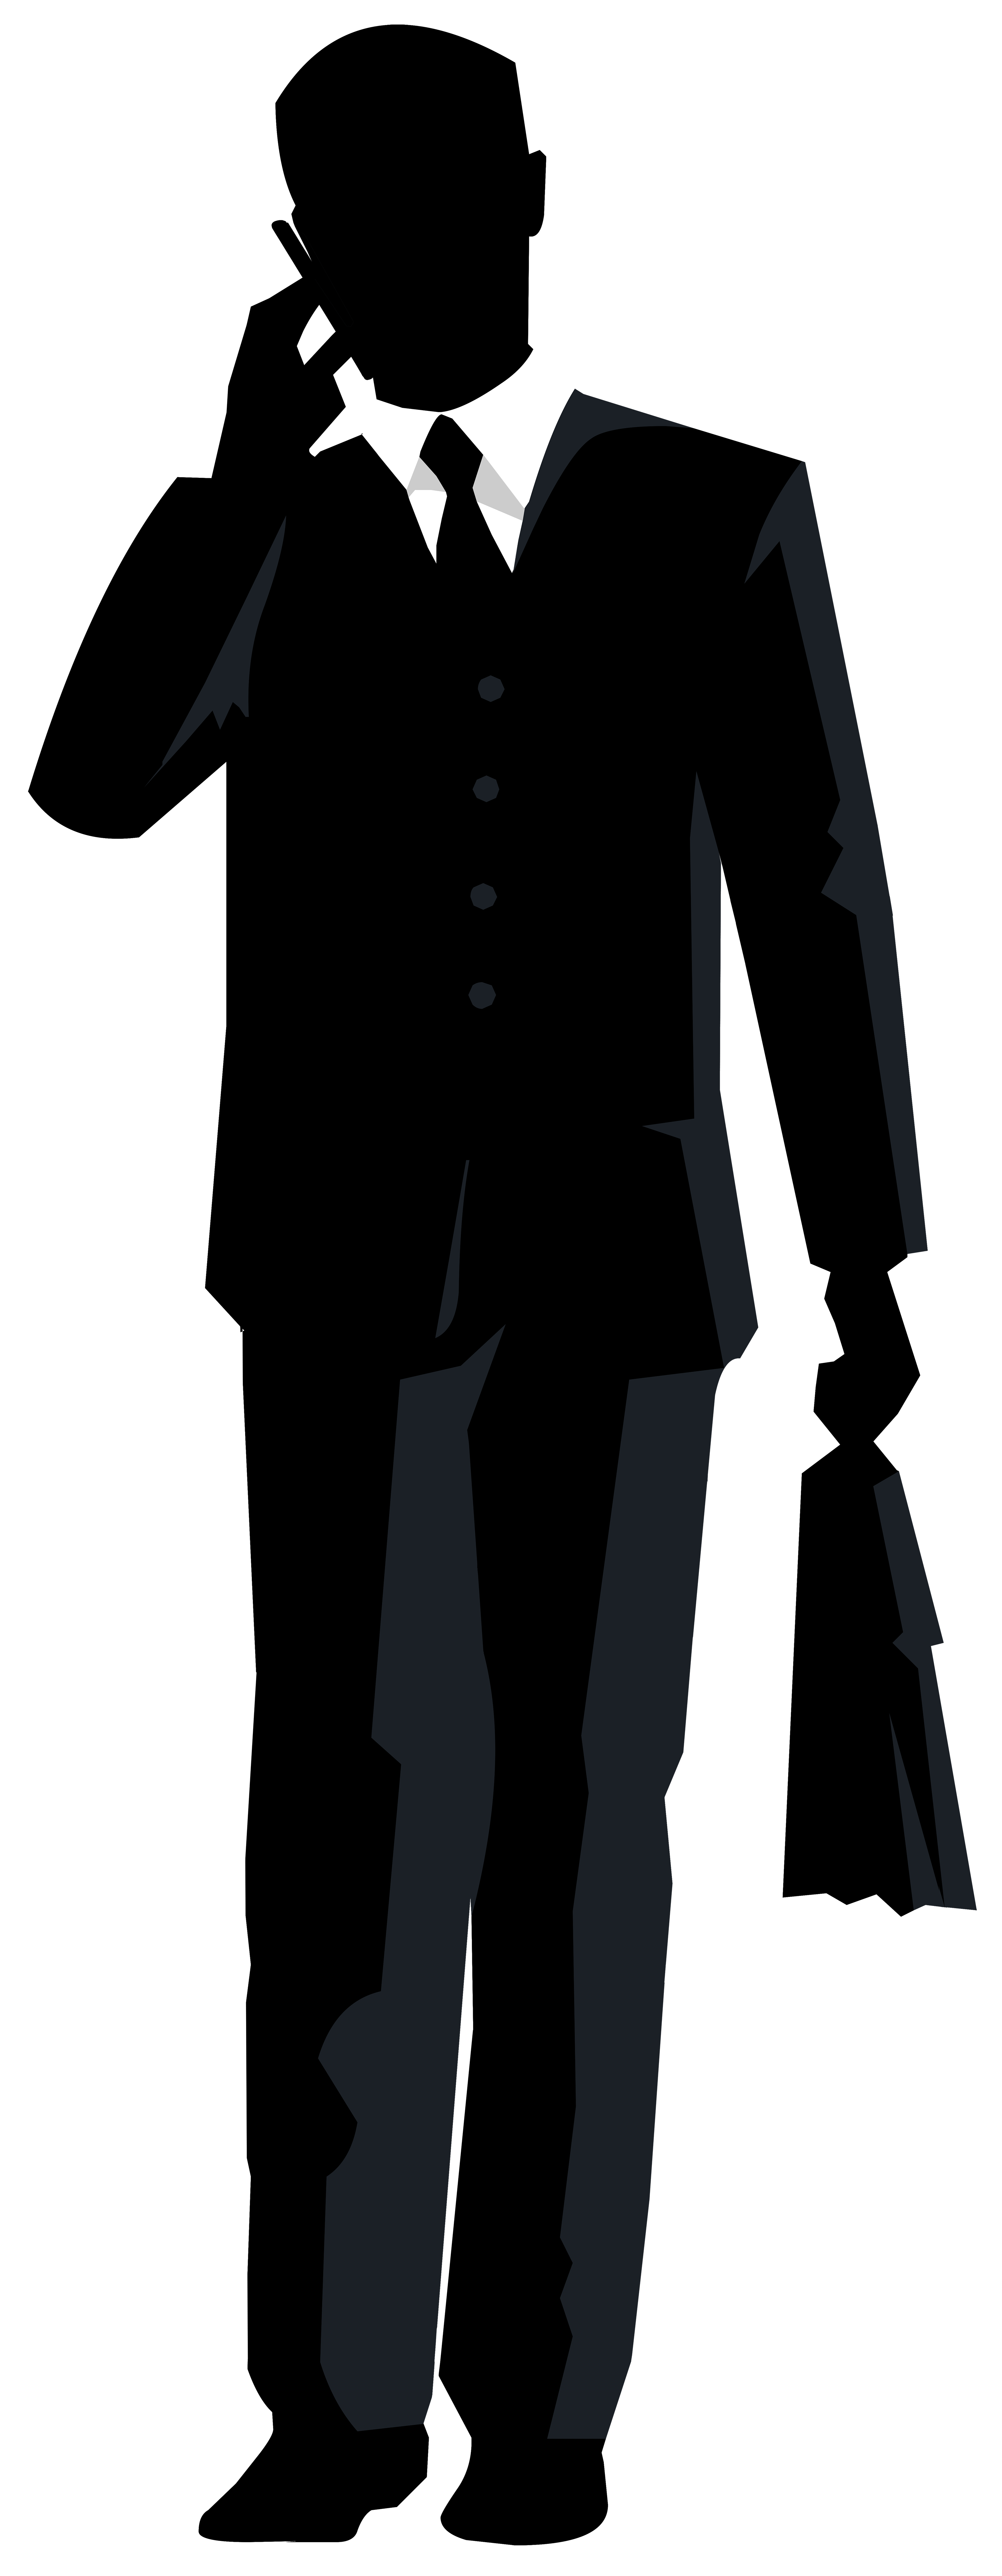 clipart transparent stock Businessman clipart elegant man. Silhouette at getdrawings com.